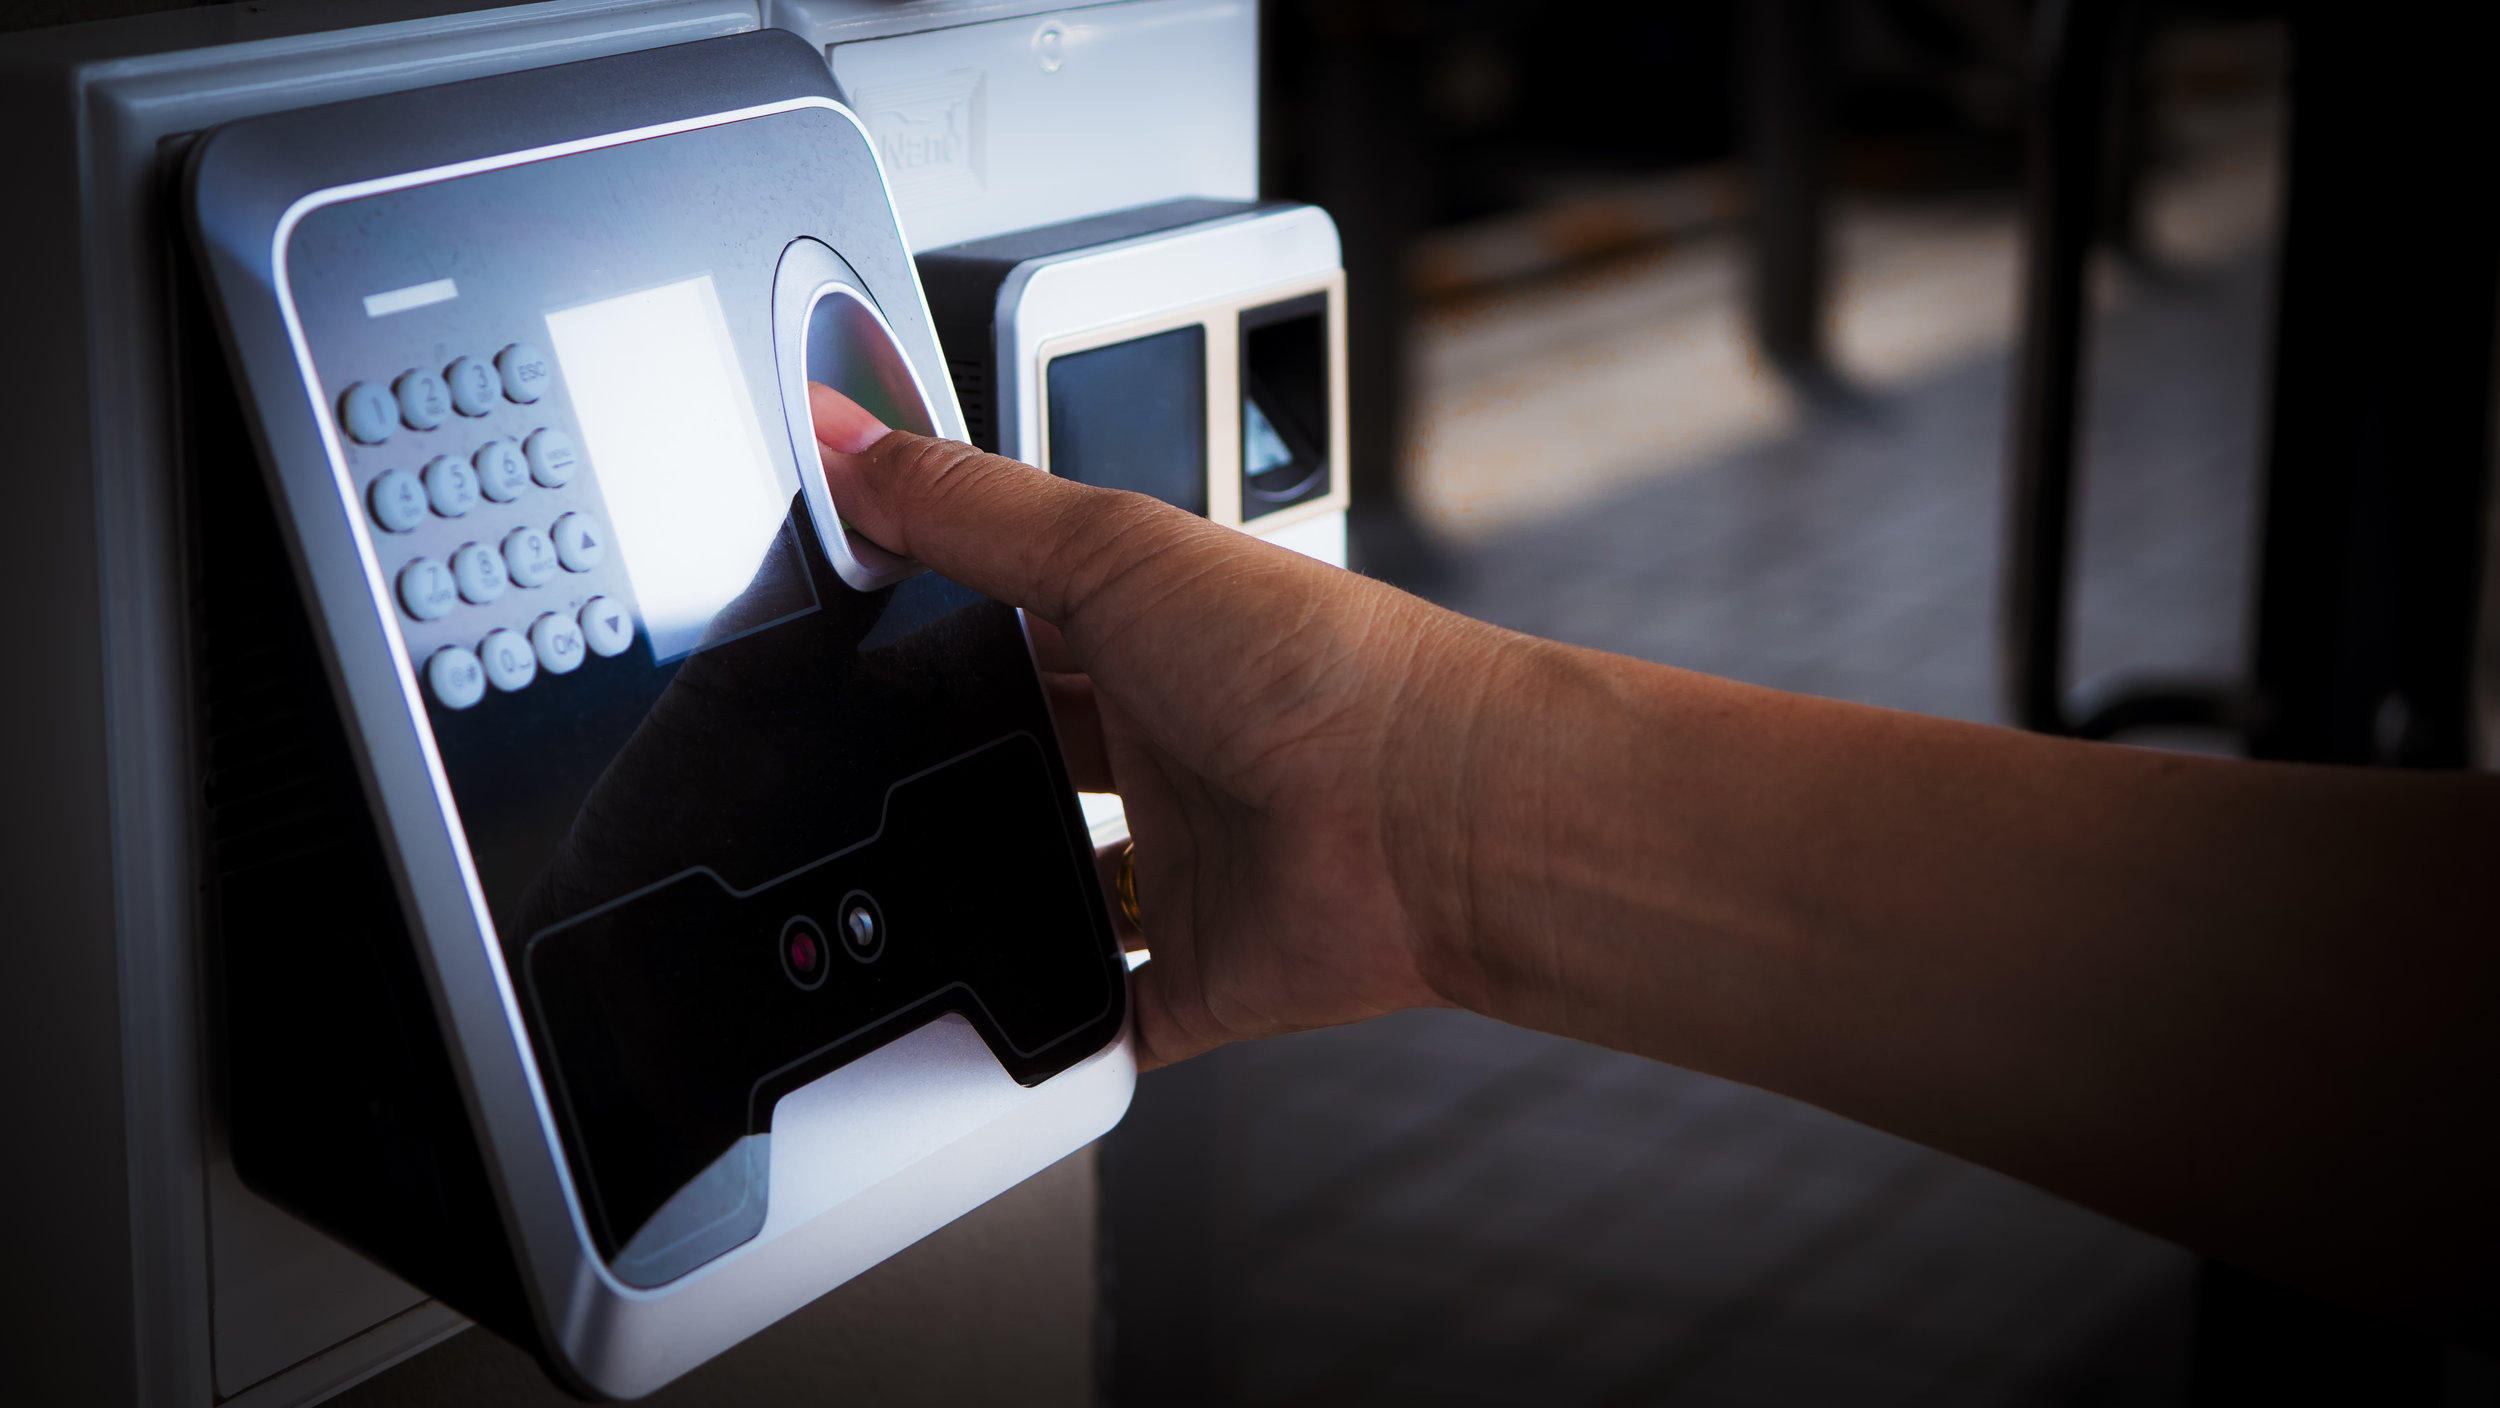 Finger-print-scan-for-enter-security-system-with-copyspace.-1044856144_5184x2920.jpeg